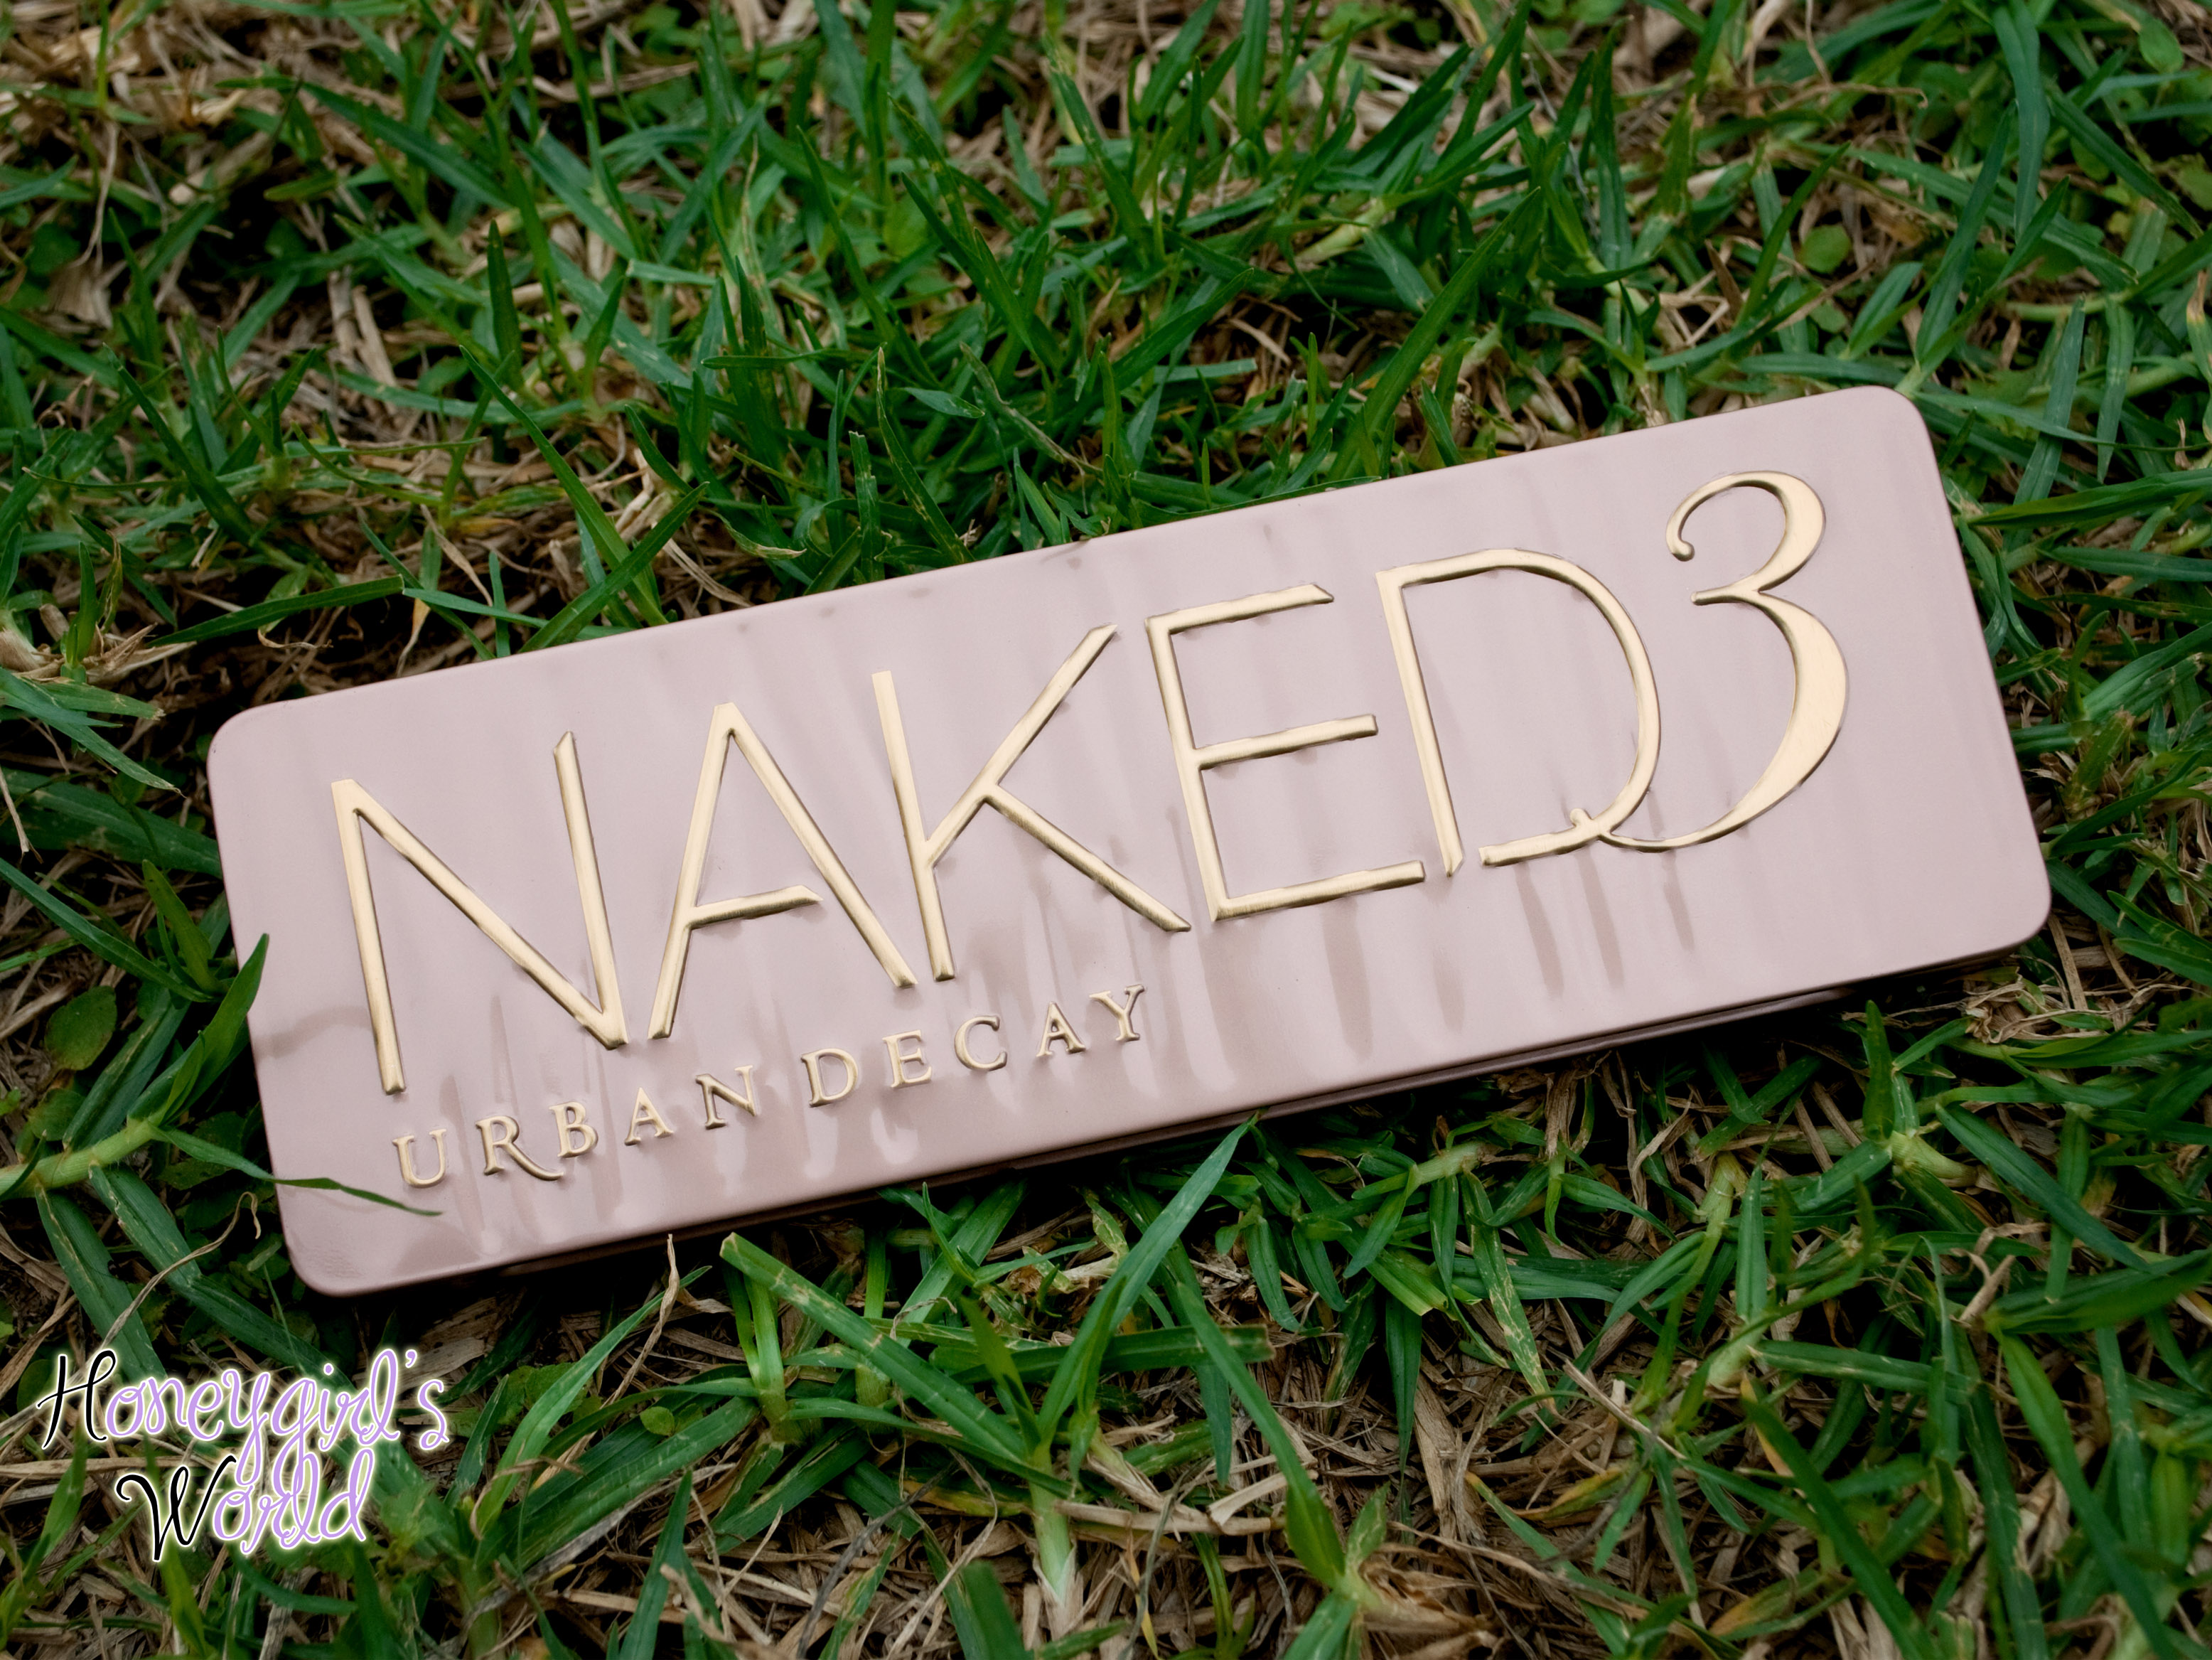 Urban Decay Naked 3 Palette 2